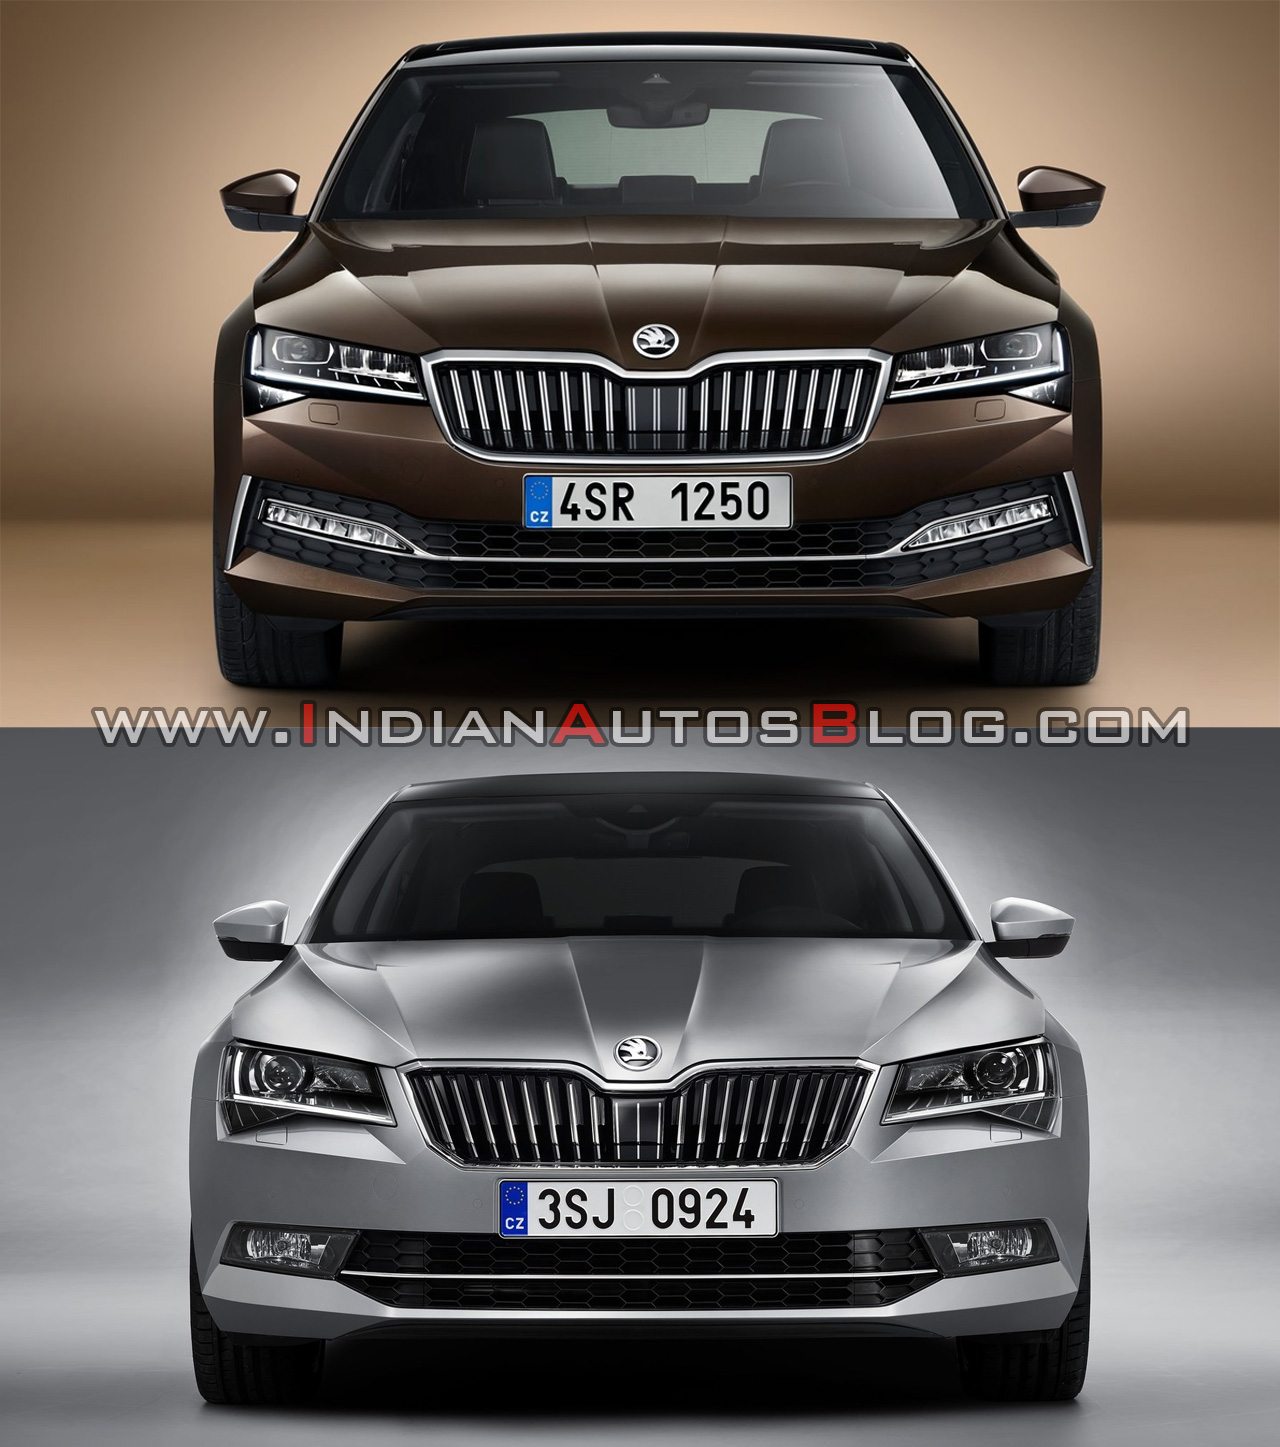 2019 Skoda Superb Vs 2015 Skoda Superb Old Vs New